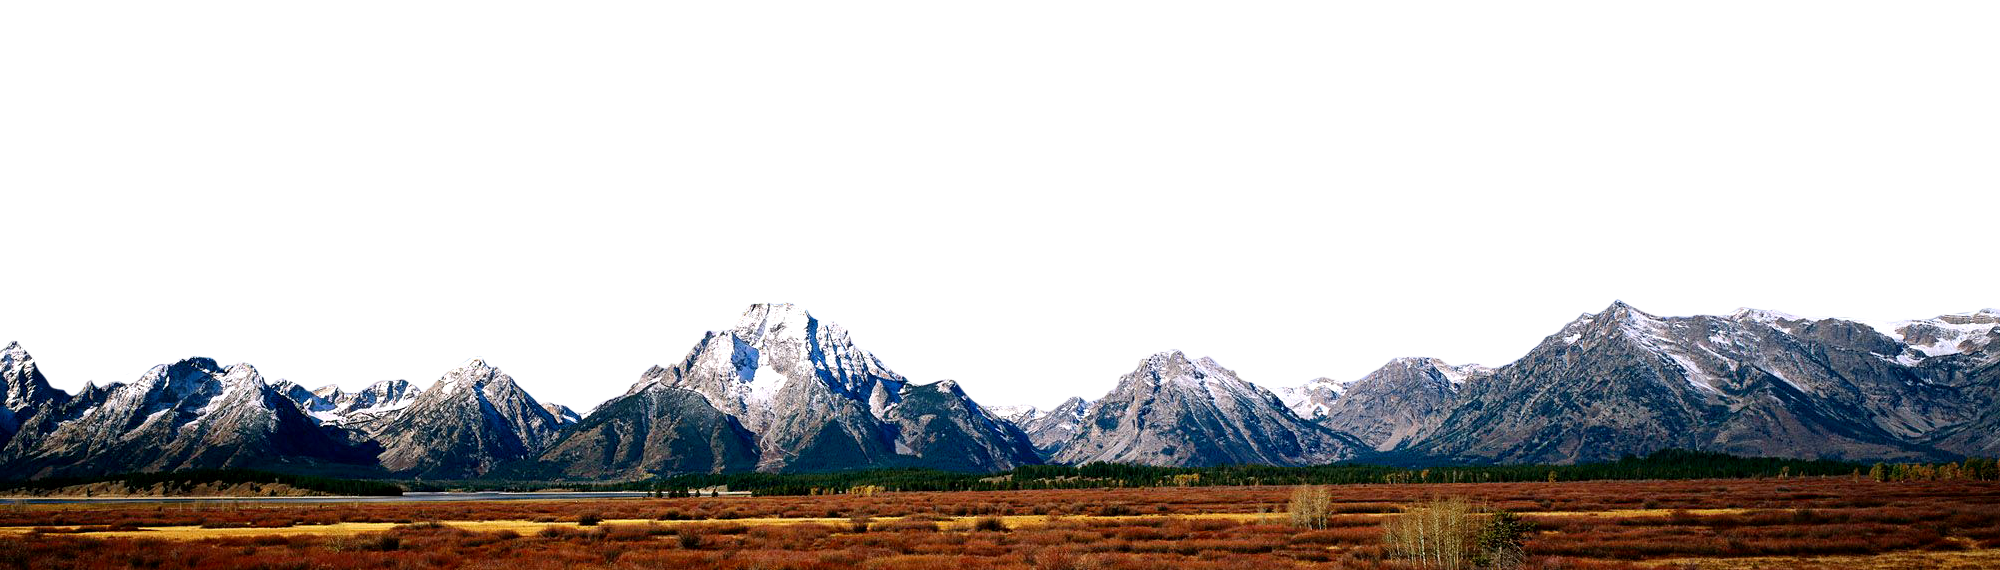 mountain png transparent mountain images pluspng #11981